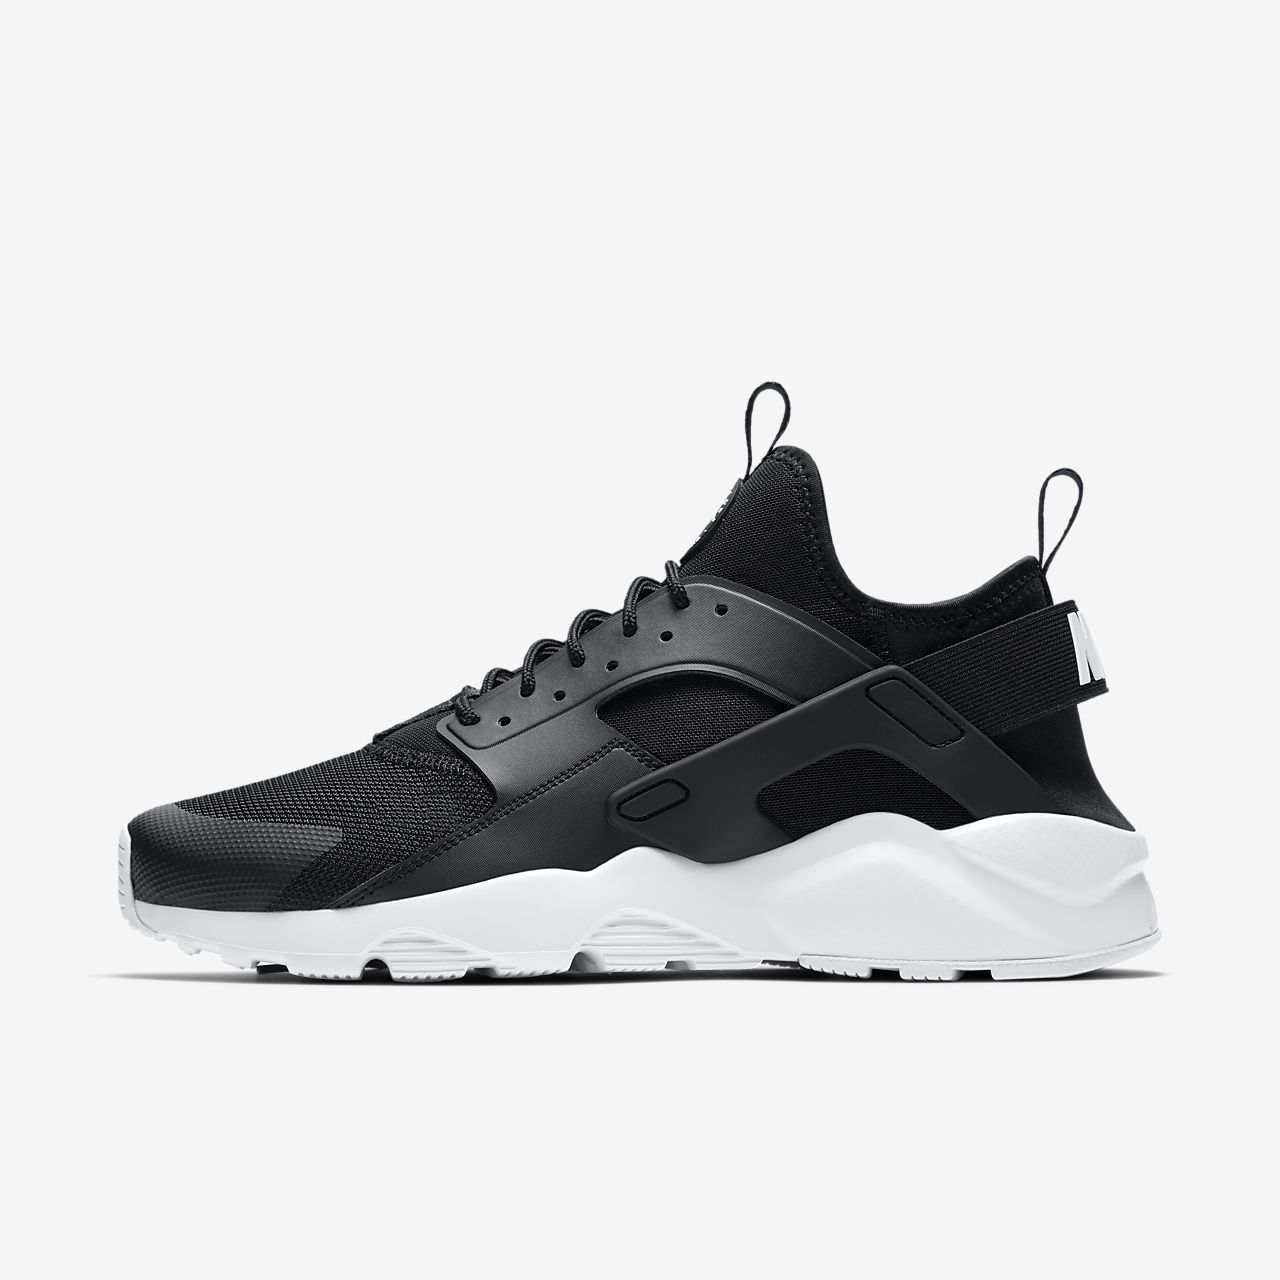 dd2dc0532d2f Nike Air Huarache Ultra Men s Shoe. Nike.com GB